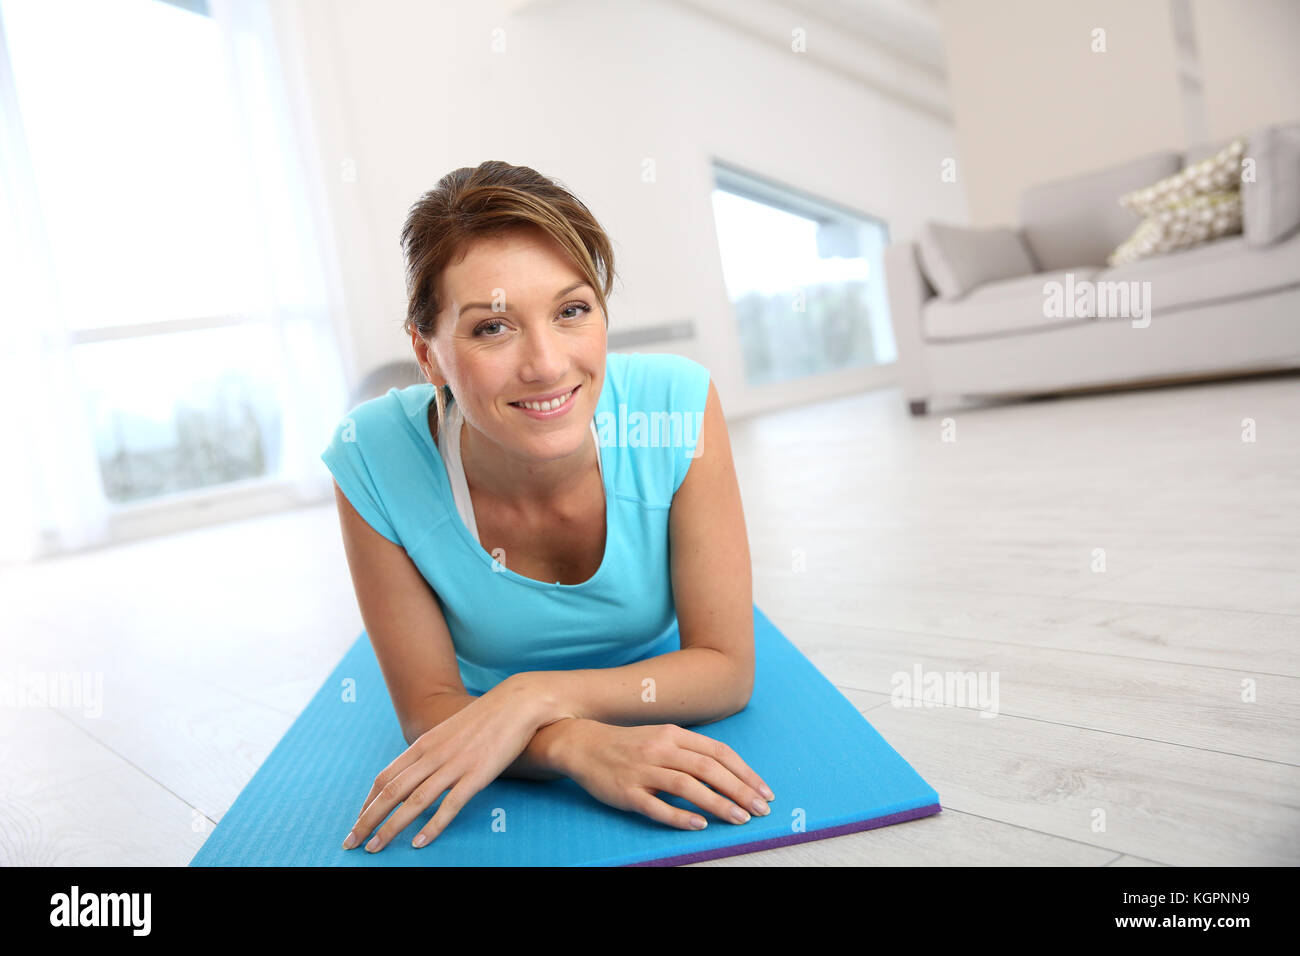 Beautiful fitness woman laying in gym floor - Stock Image